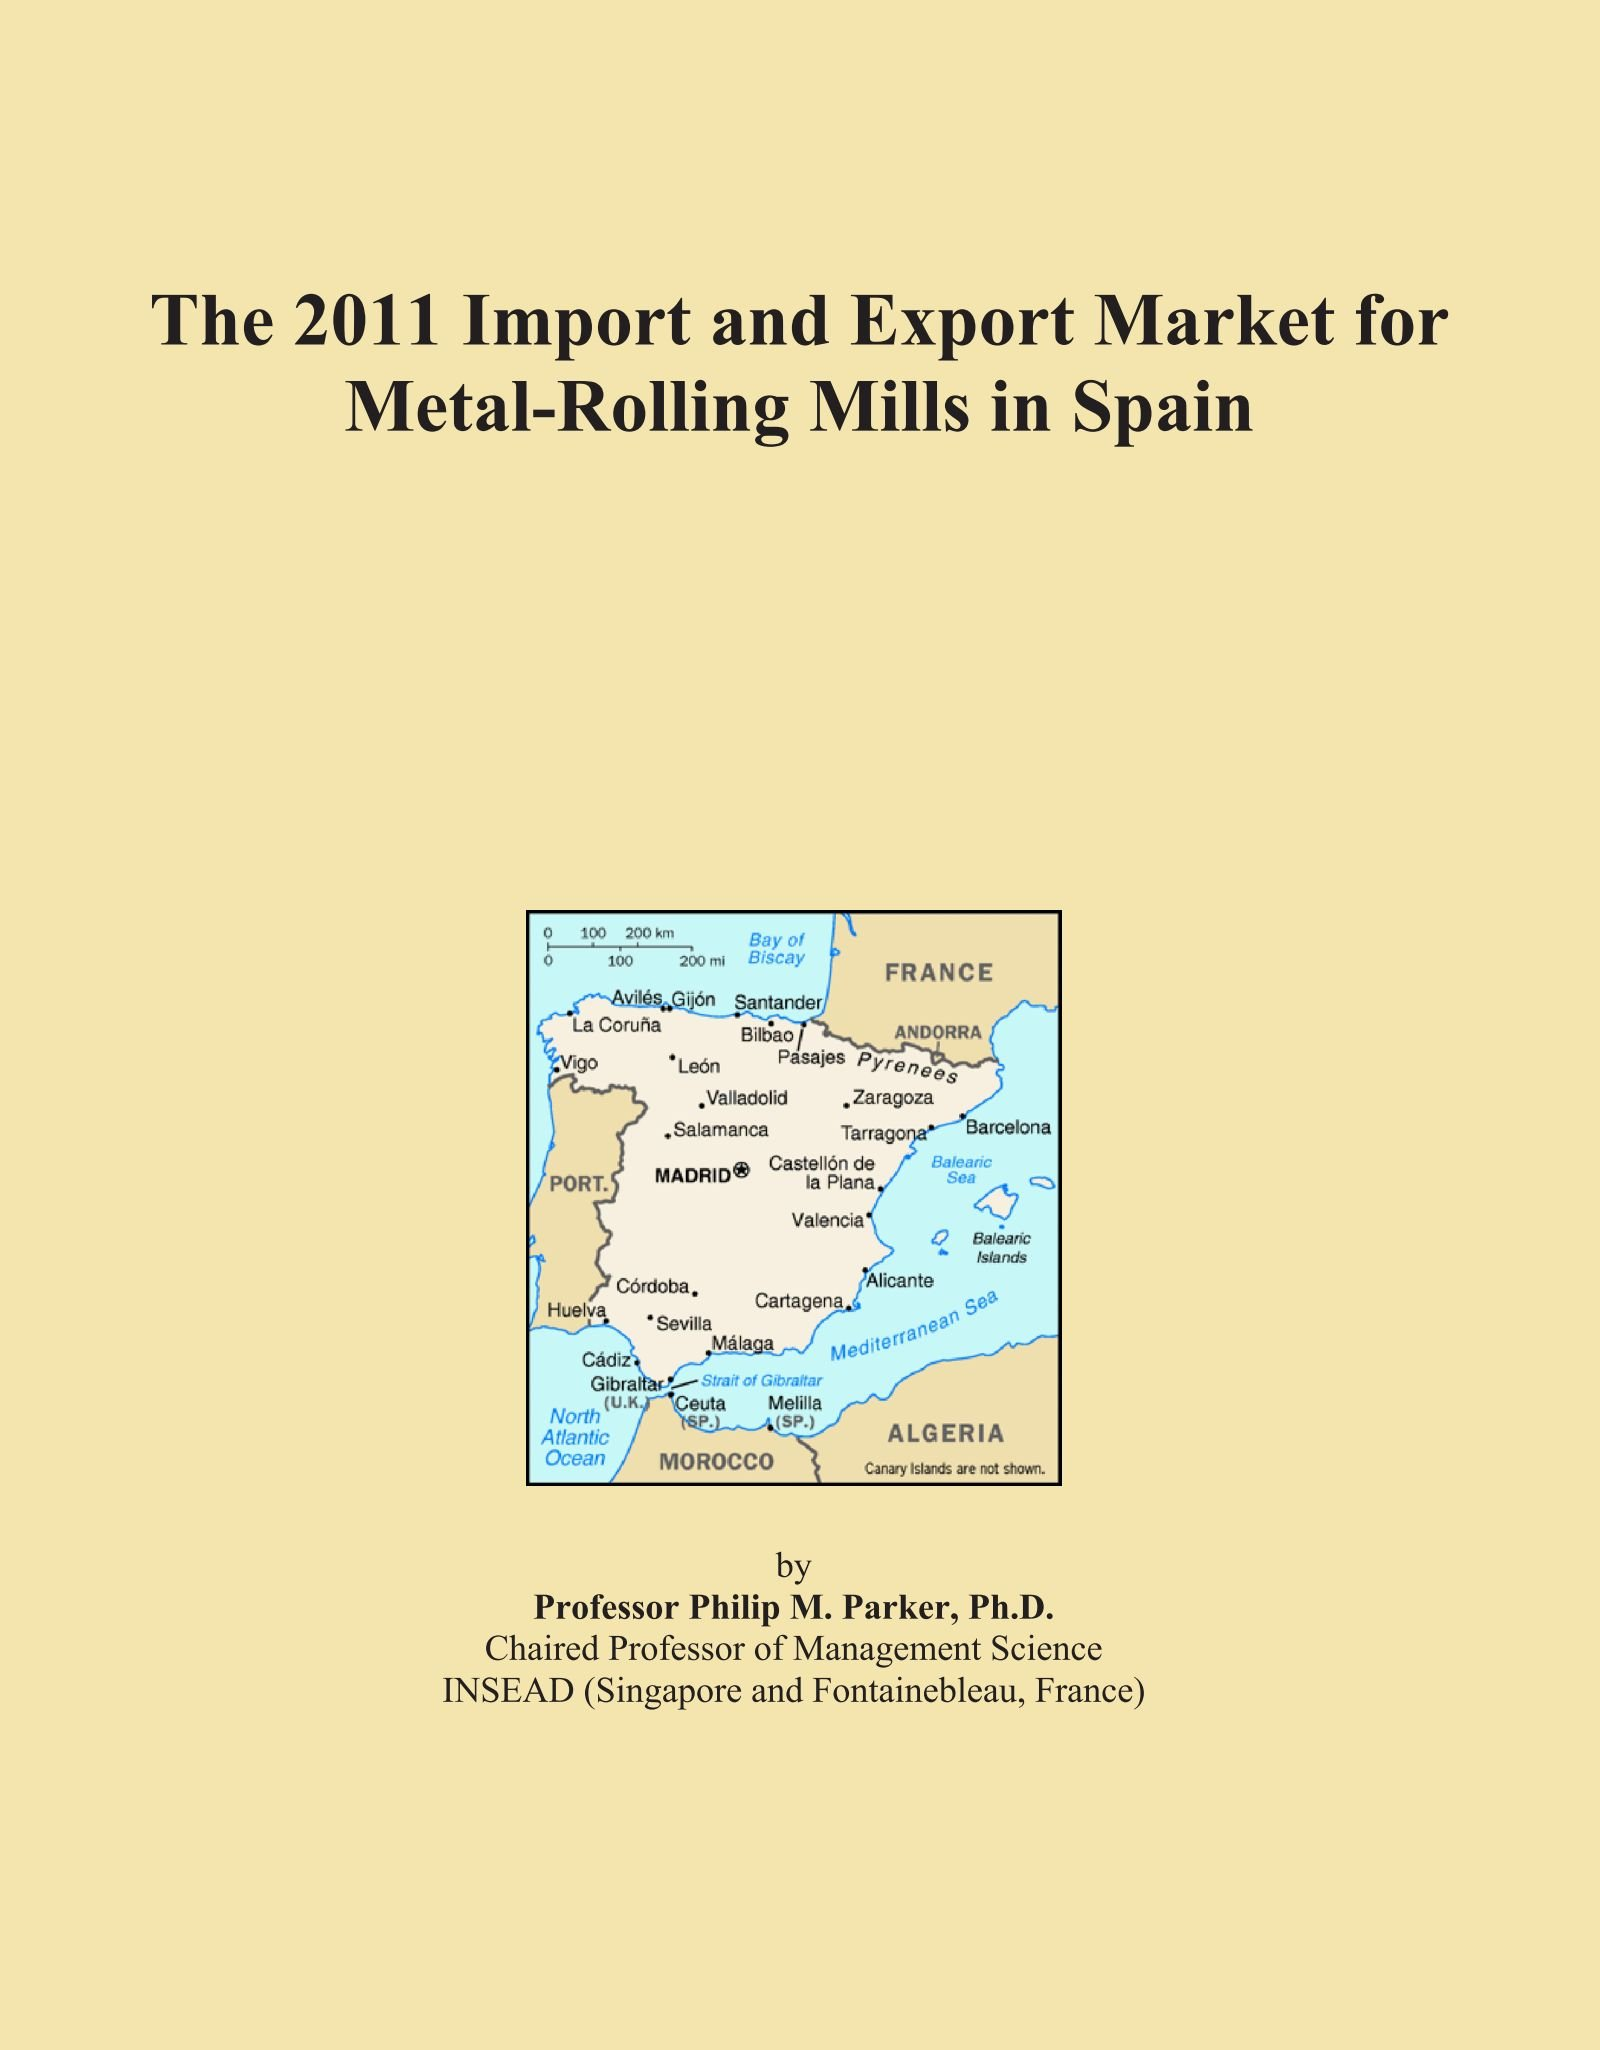 The 2011 Import and Export Market for Metal-Rolling Mills in Spain pdf